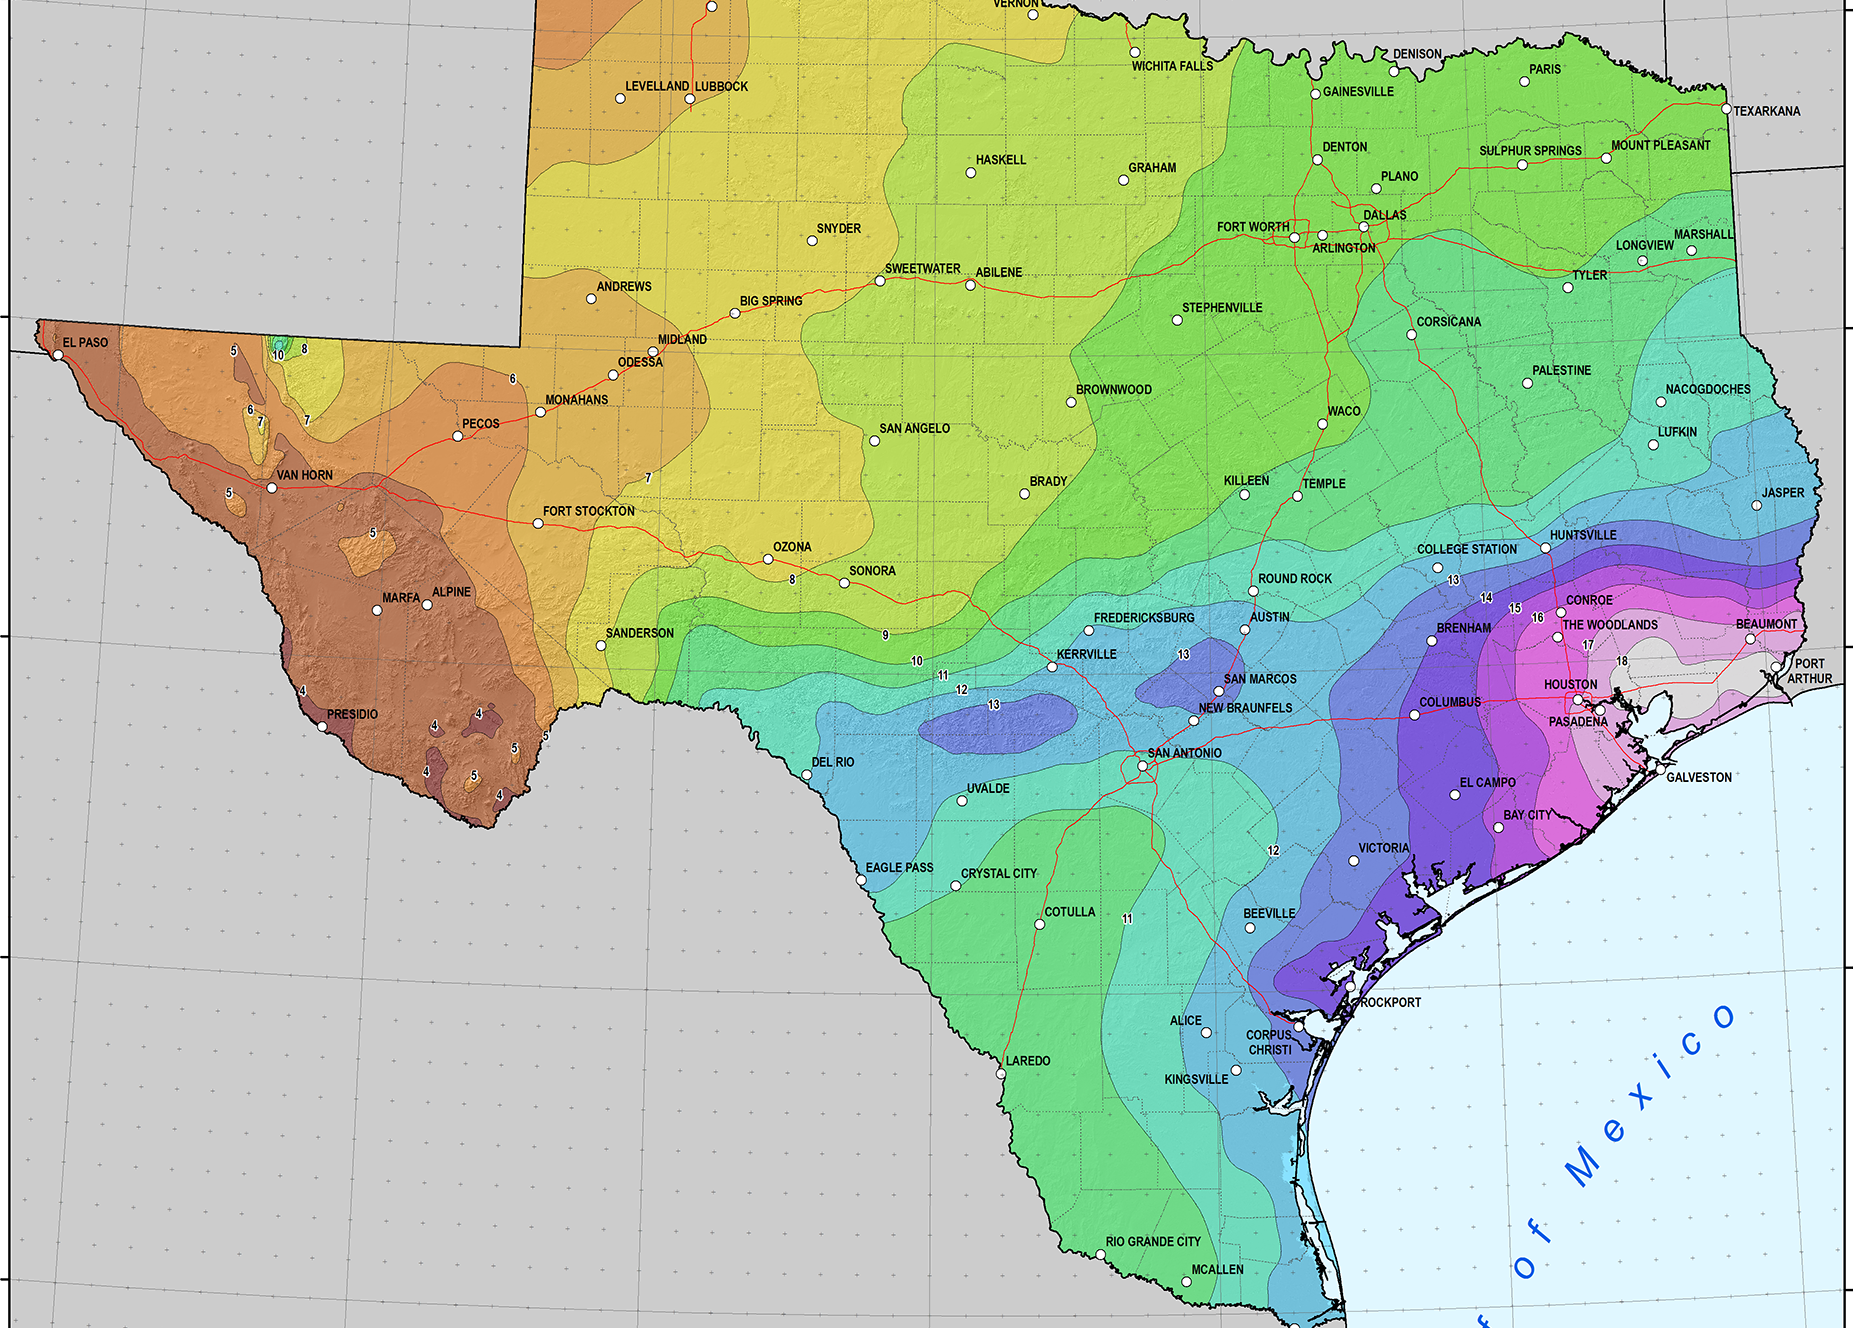 Cartographic of Texas showing new rainfall values for 100y-24h event-NOAA_0